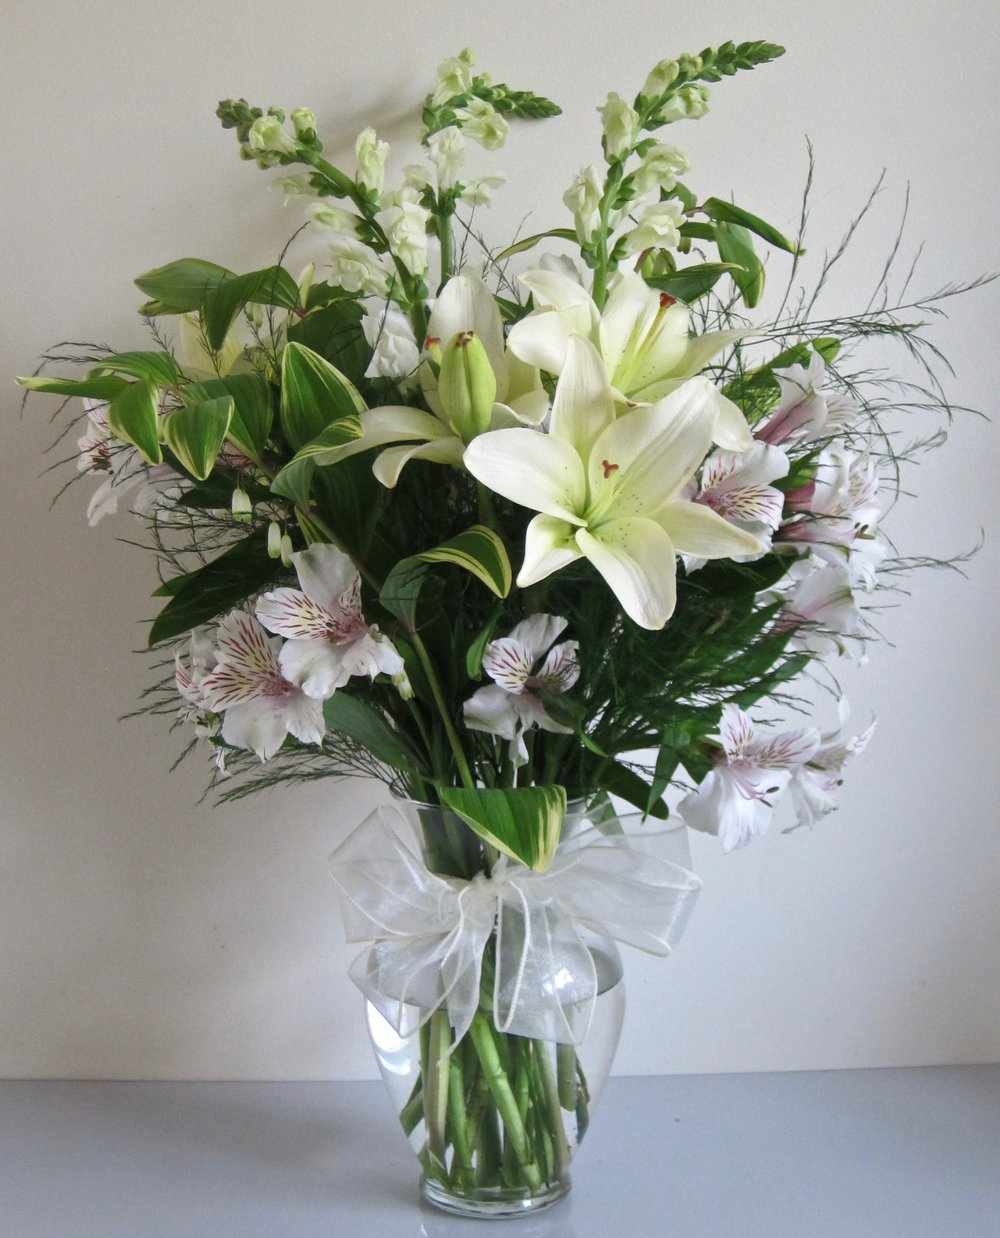 GREEN &WHITE Bouquet featuring lillies, snapdragons, solomon's seal, ferns and alstroemeria, $55.